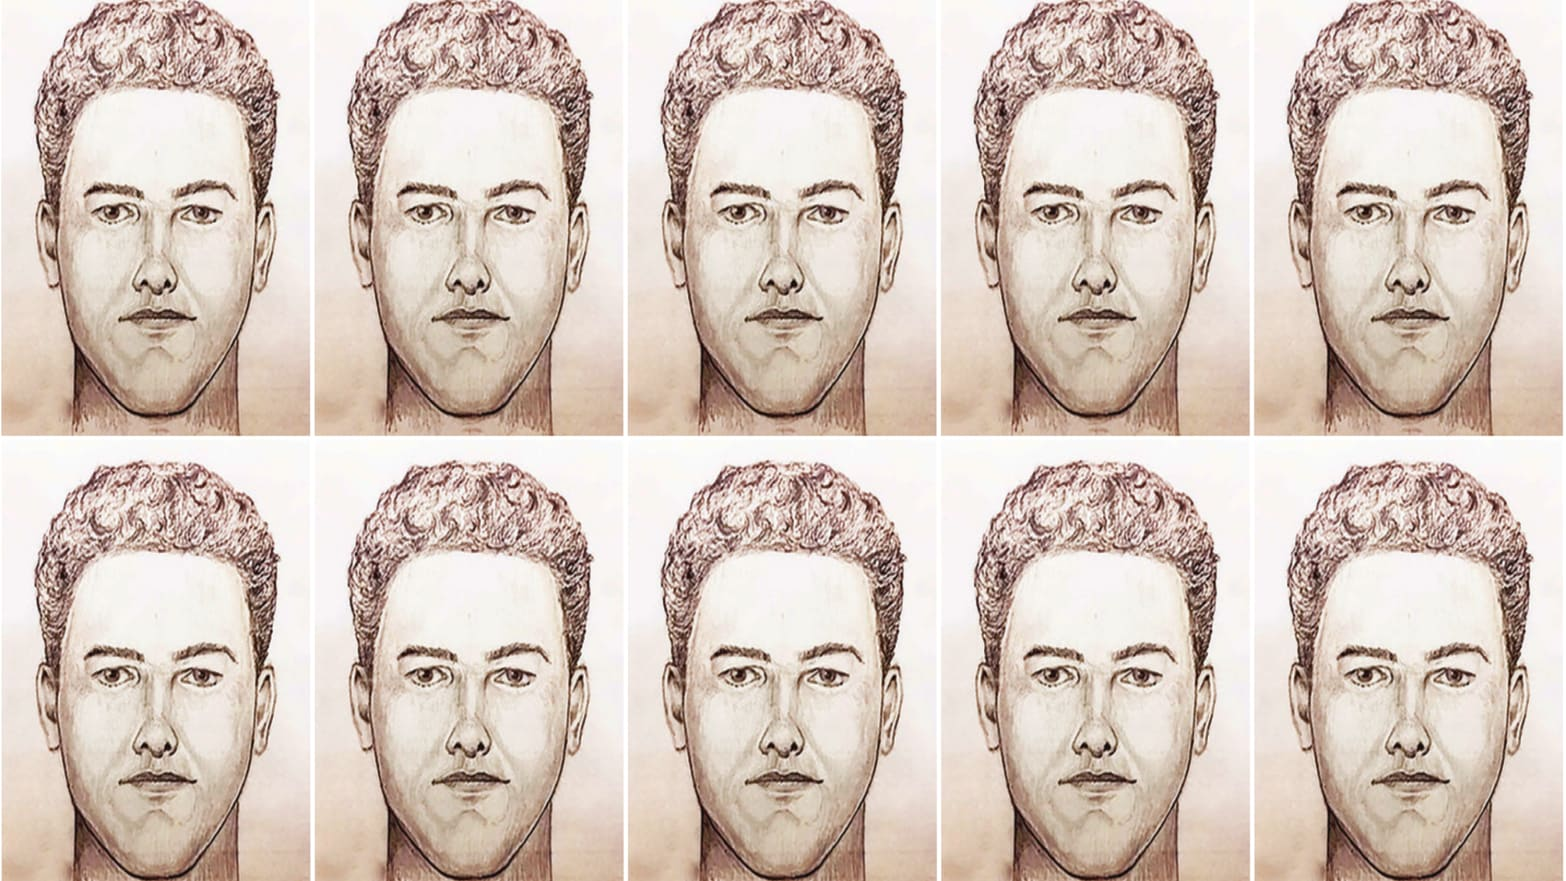 Delphi Murders: Police Reveal New Evidence in Slaying of Liberty